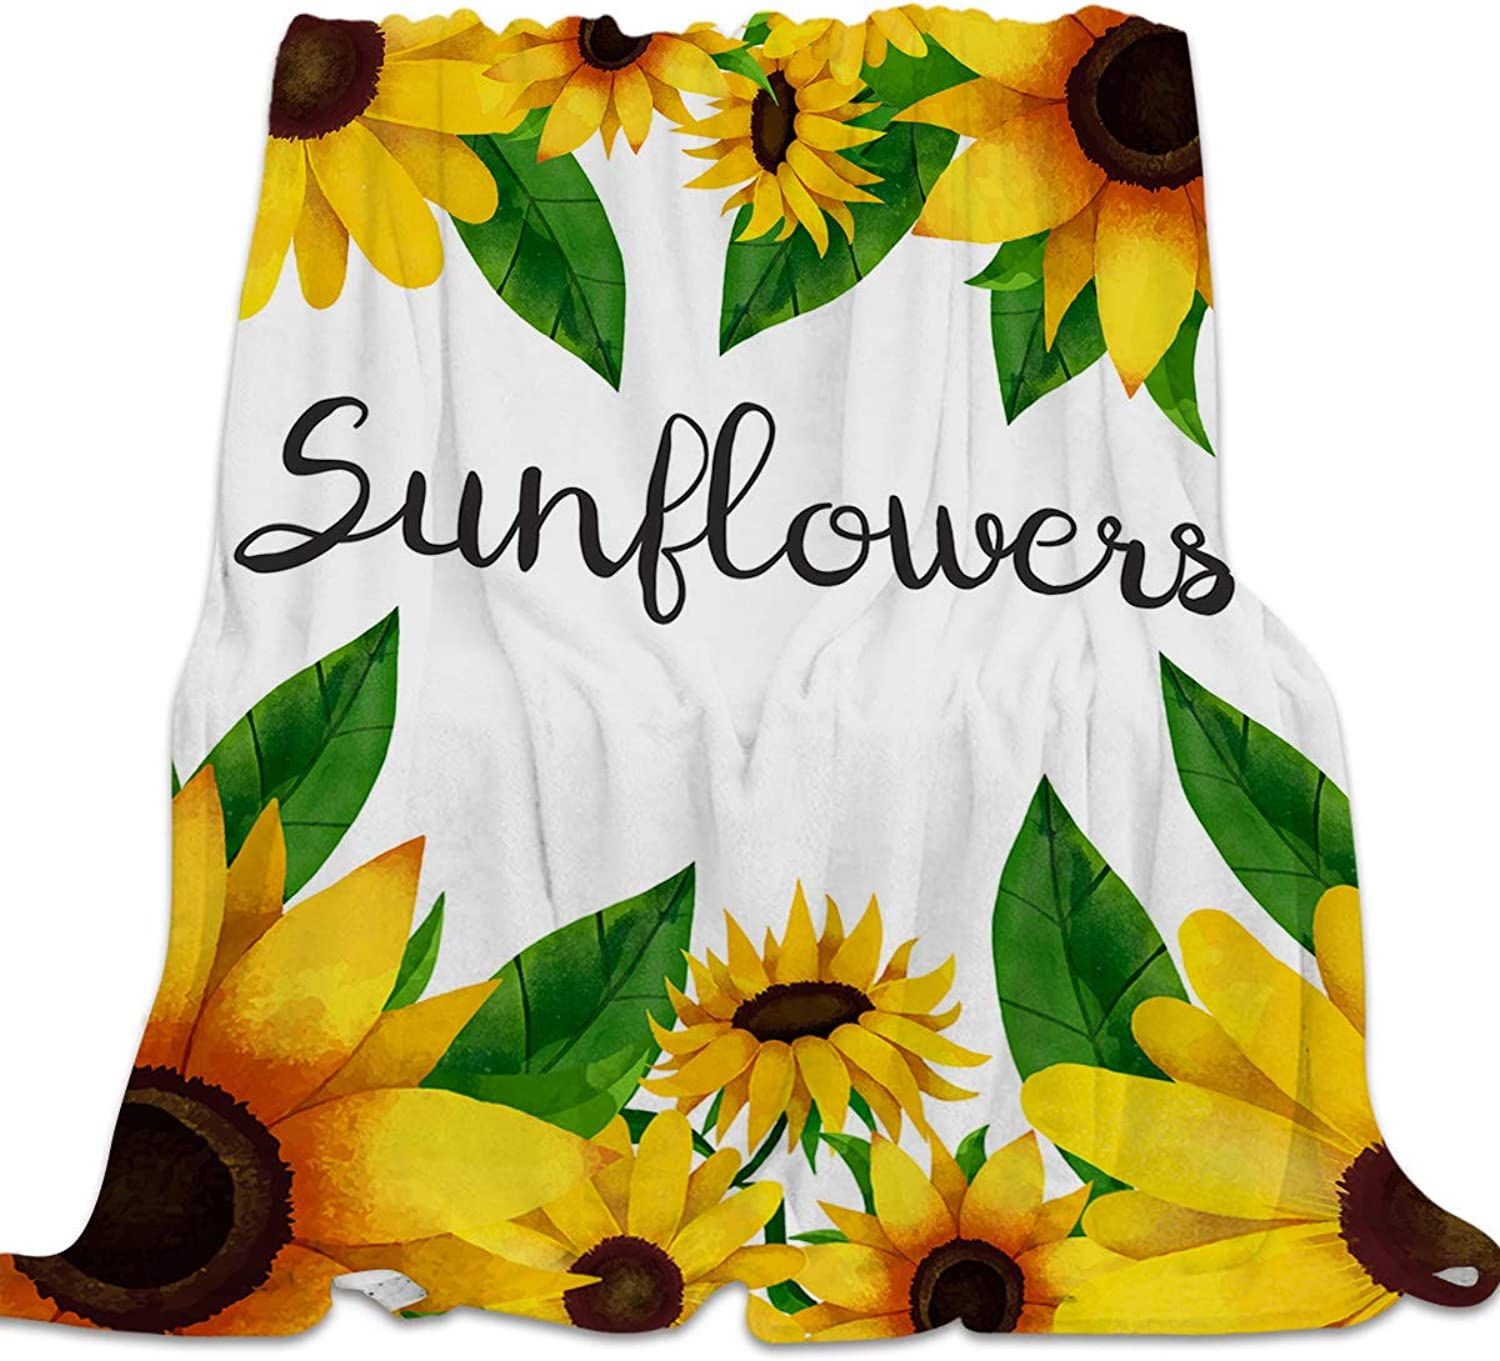 YEHO Art Gallery Flannel Fleece Bed Blanket Soft Throw-Blankets for Kids Adult,colorful Sunflowers Pattern,Comfort Blankets for Sofa Couch Bedroom Living Room Decor,39x49inch